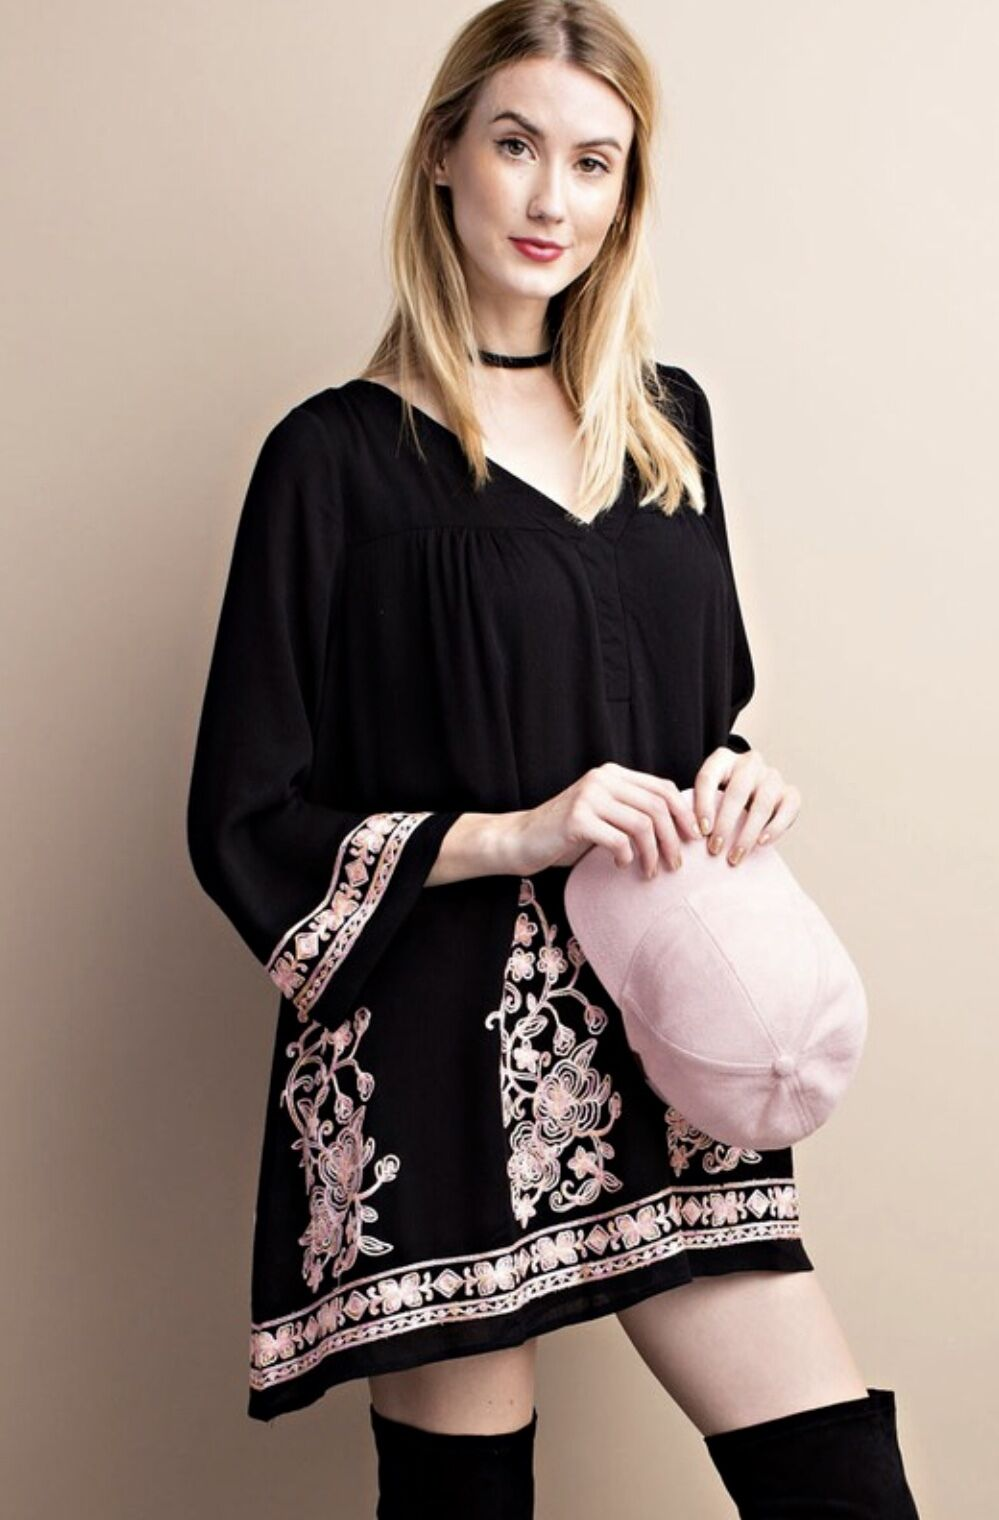 NWT Dress Tunic Floral Embroiderot Swing Mini Bell Sleeves schwarz Rosa lined M